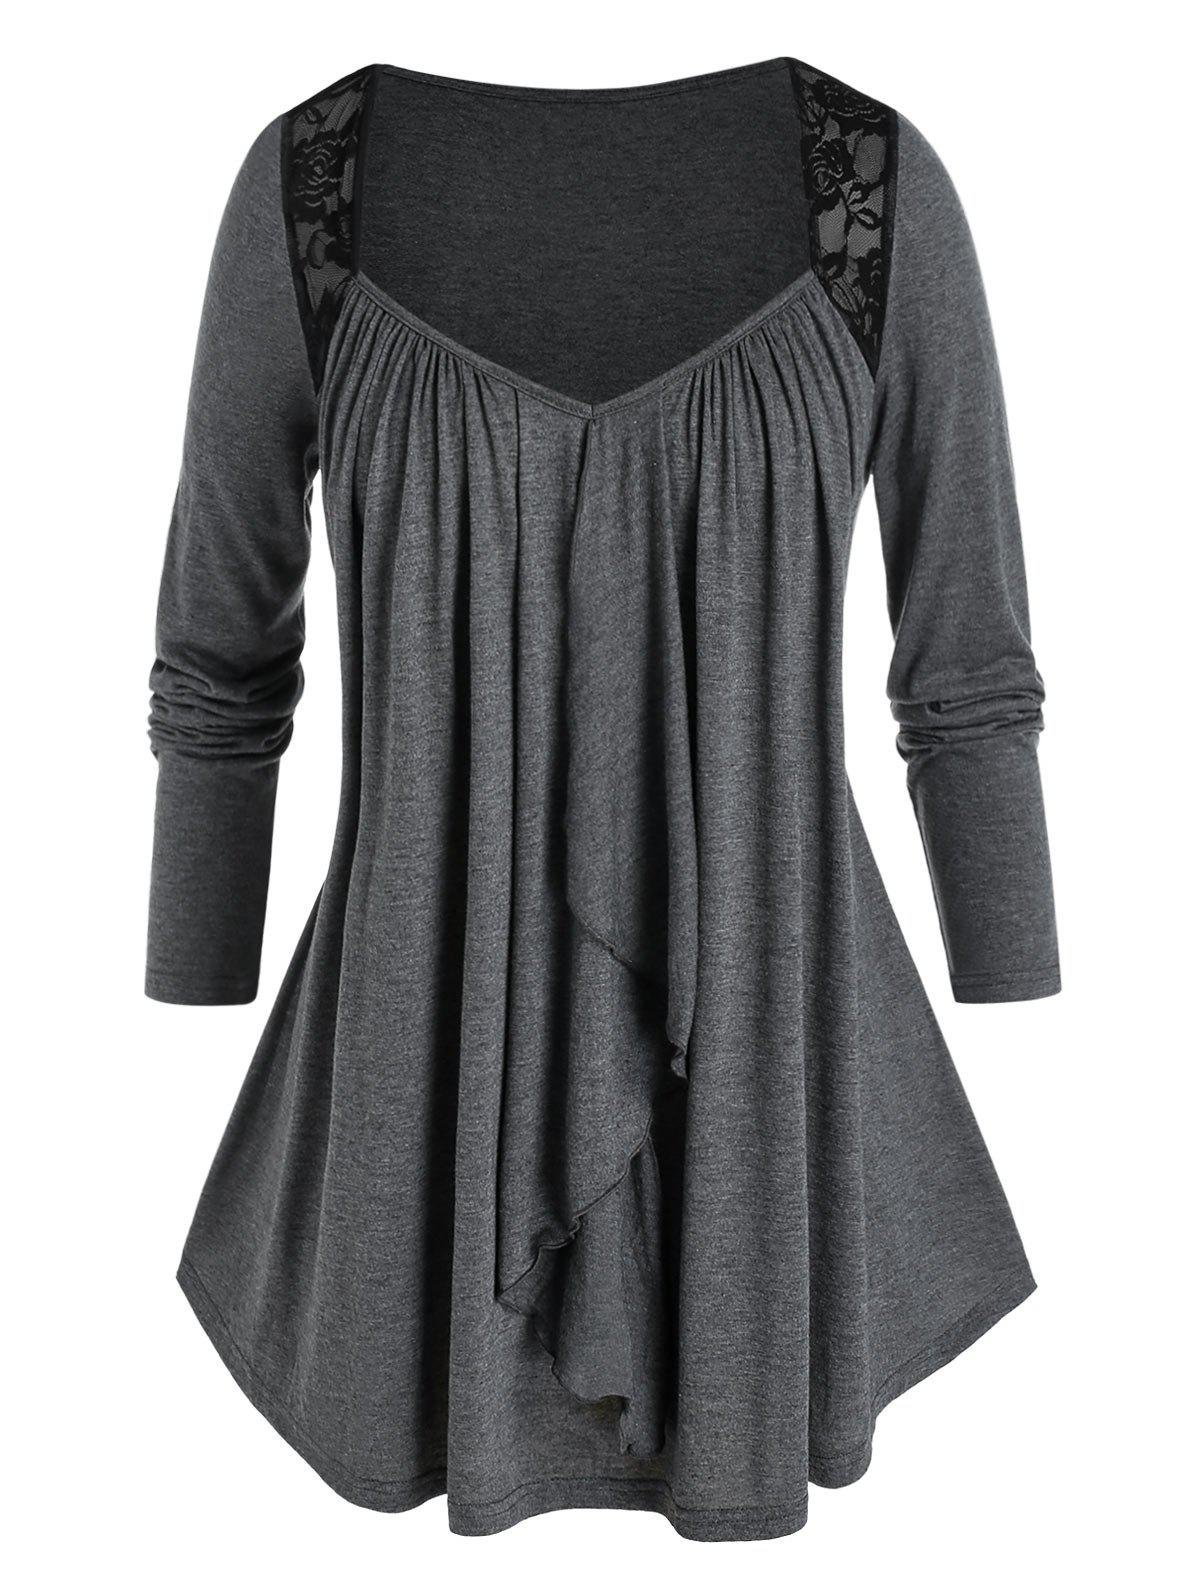 Plus Size Lace Panel Draped T Shirt - ASH GRAY L